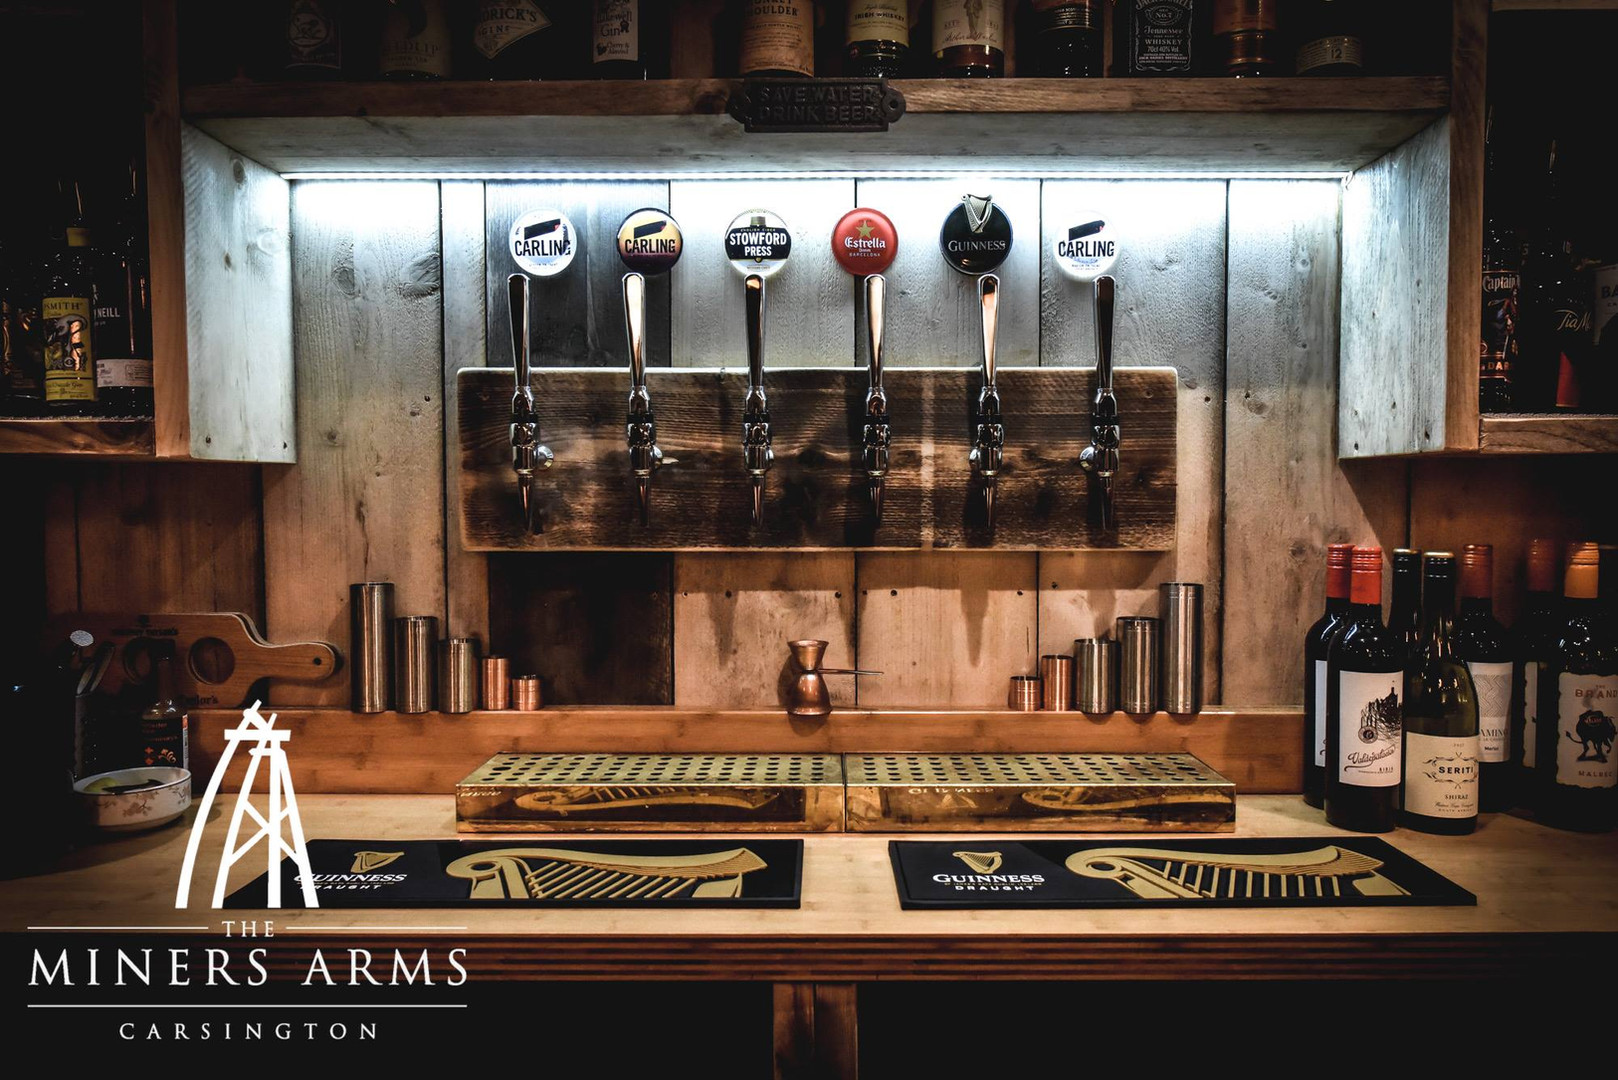 Feature Draft Beer Pumps